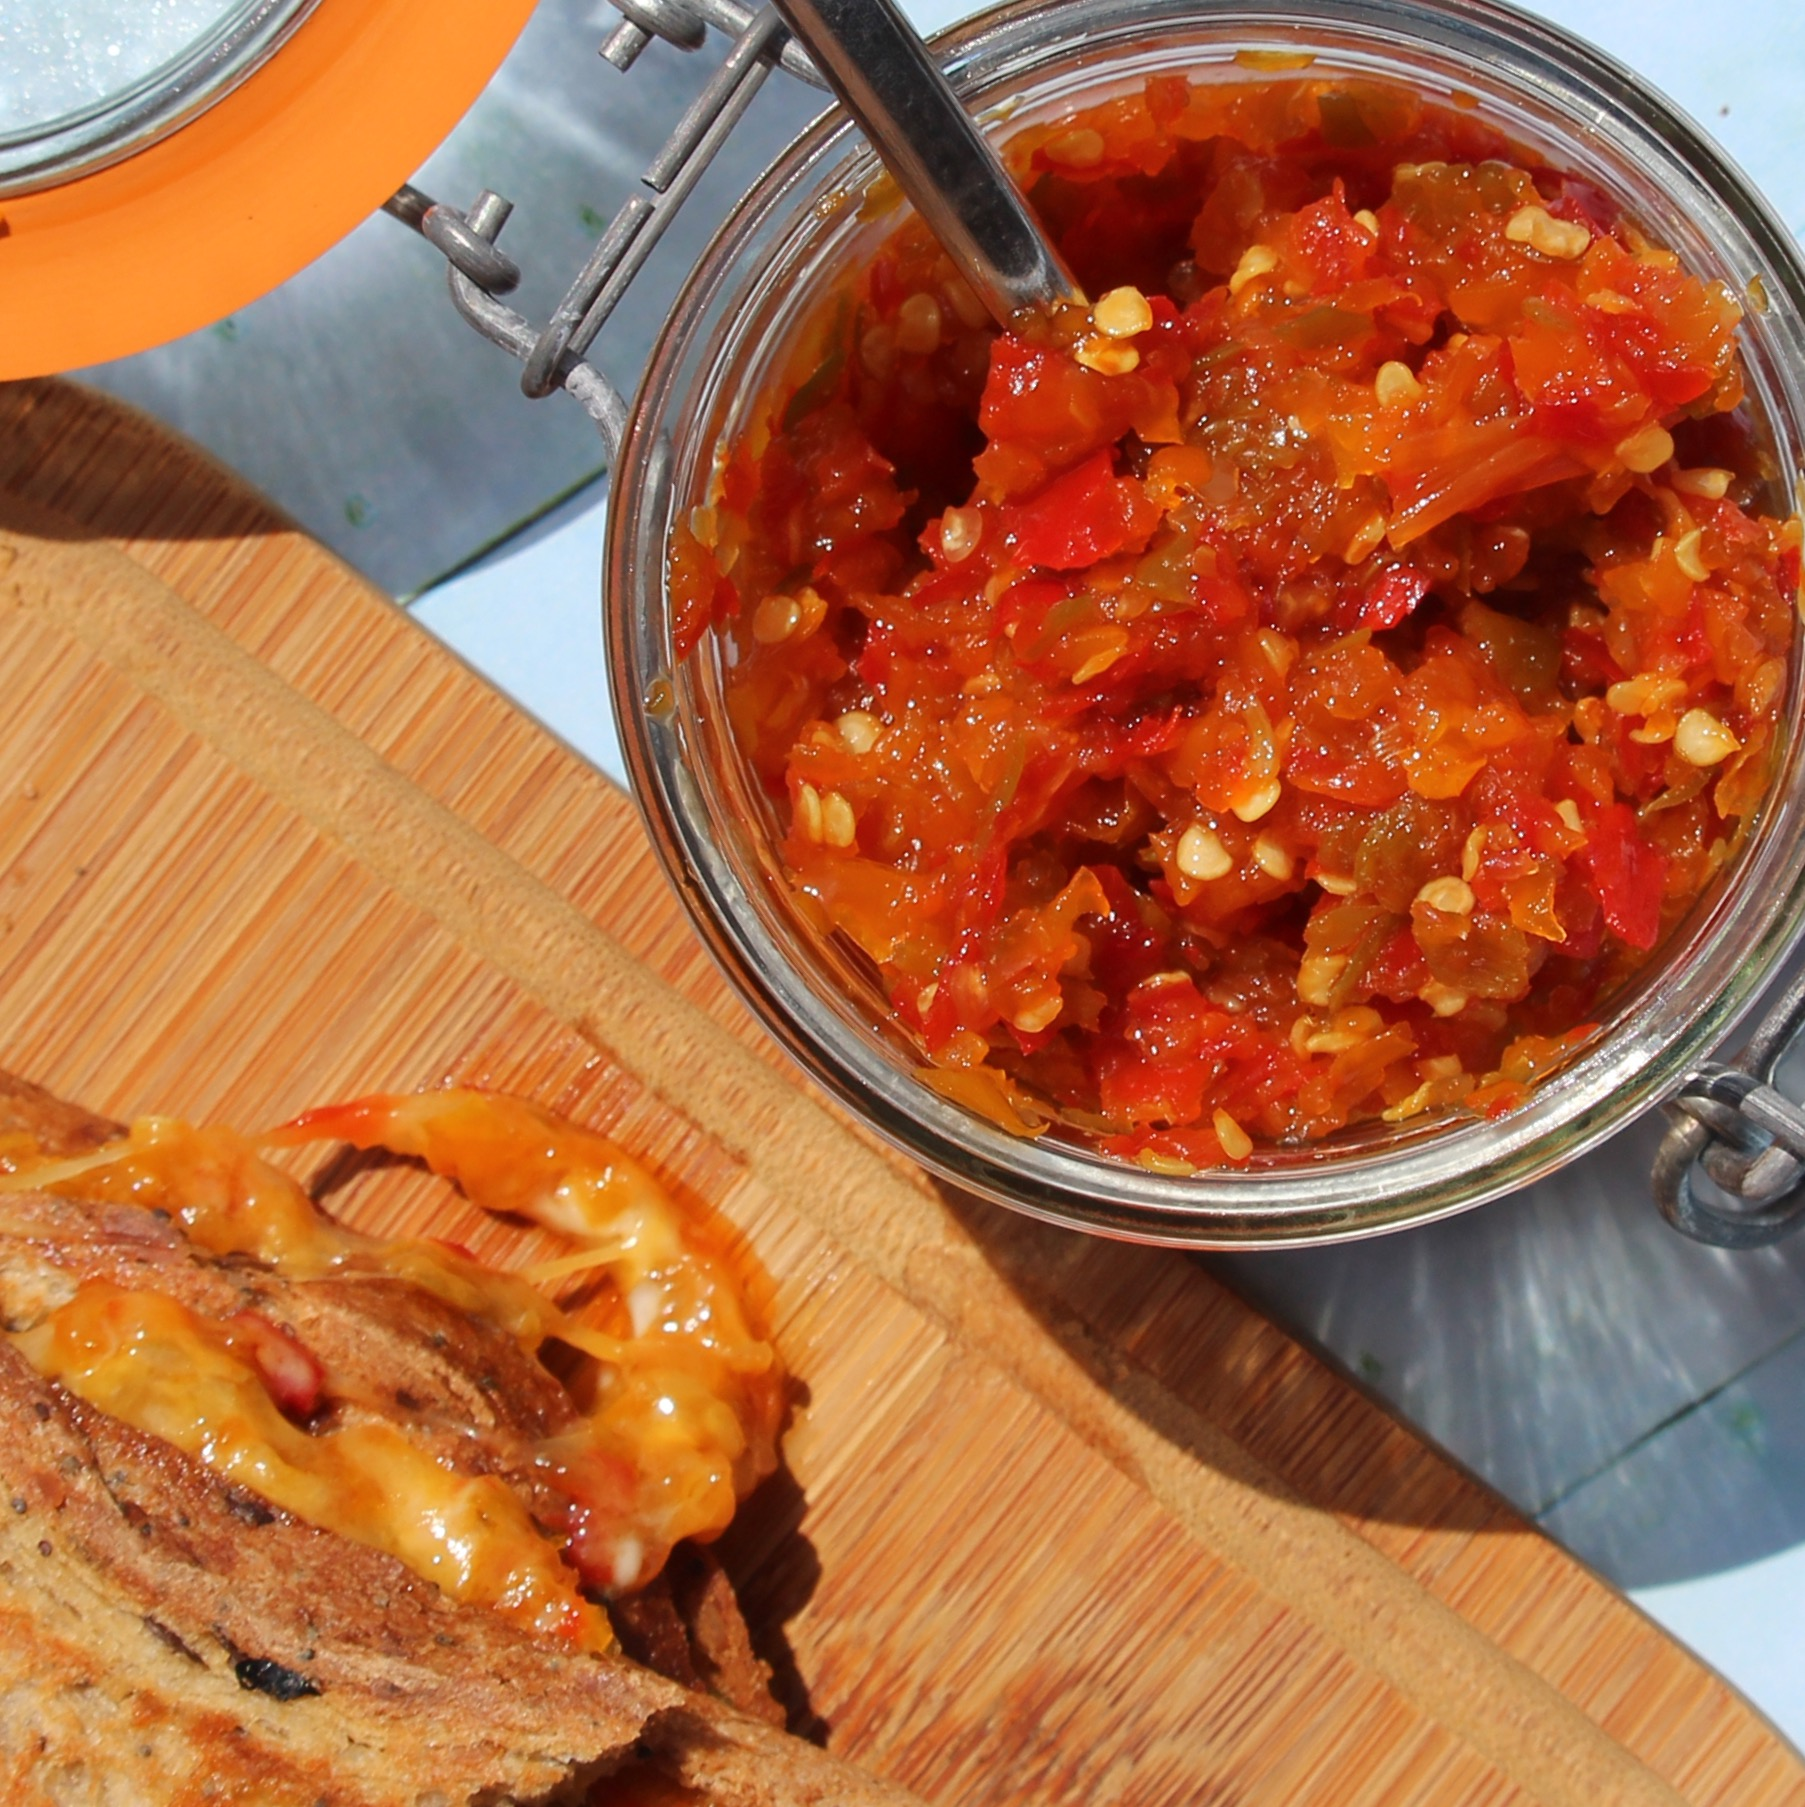 """""""This relish spices up everything from grilled cheese sandwiches to burgers and hot dogs,"""" says foodinjars (Marisa McClellan). """"Or, for an easy appetizer, spoon some over a block of cream cheese and serve with crackers."""""""